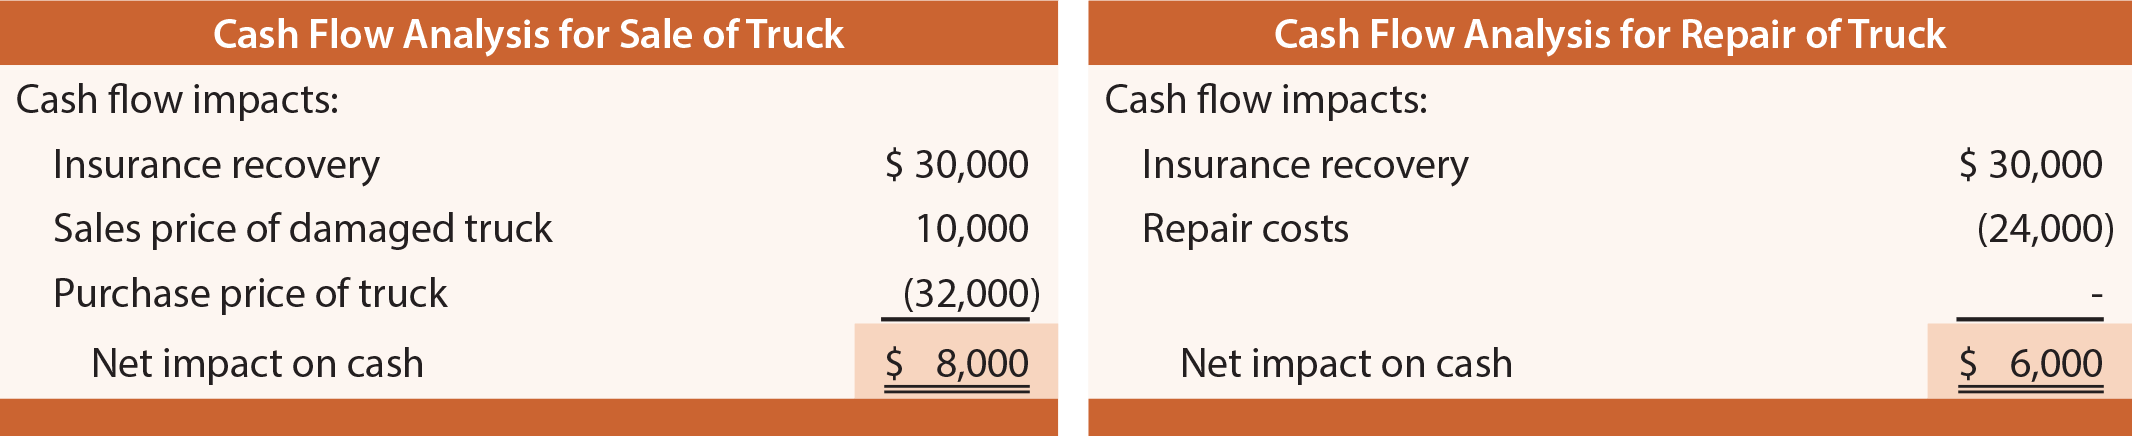 Cash Flow Analysis of Truck